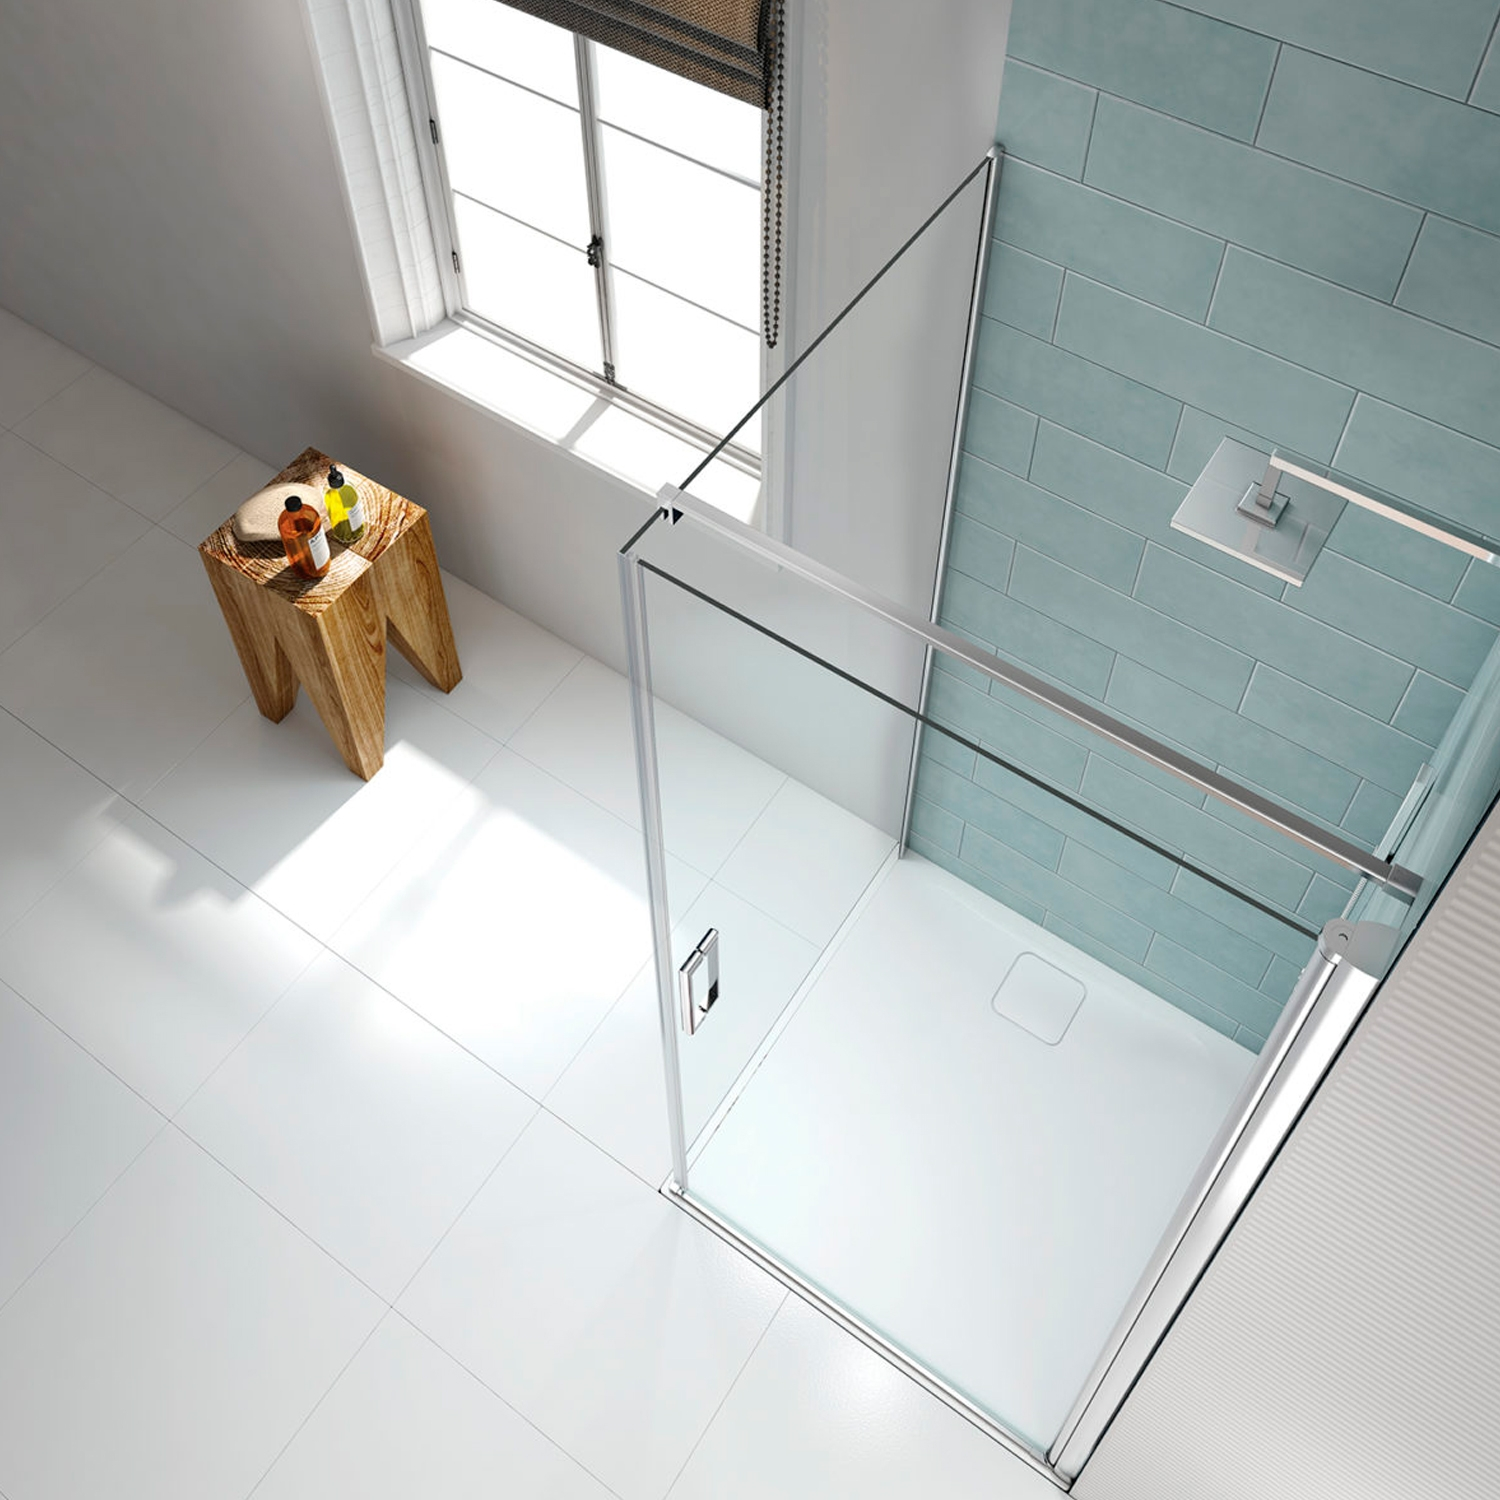 Merlyn 8 Series Frameless Pivot Shower Door 800mm with 800mm x 800mm Tray - 8mm Glass